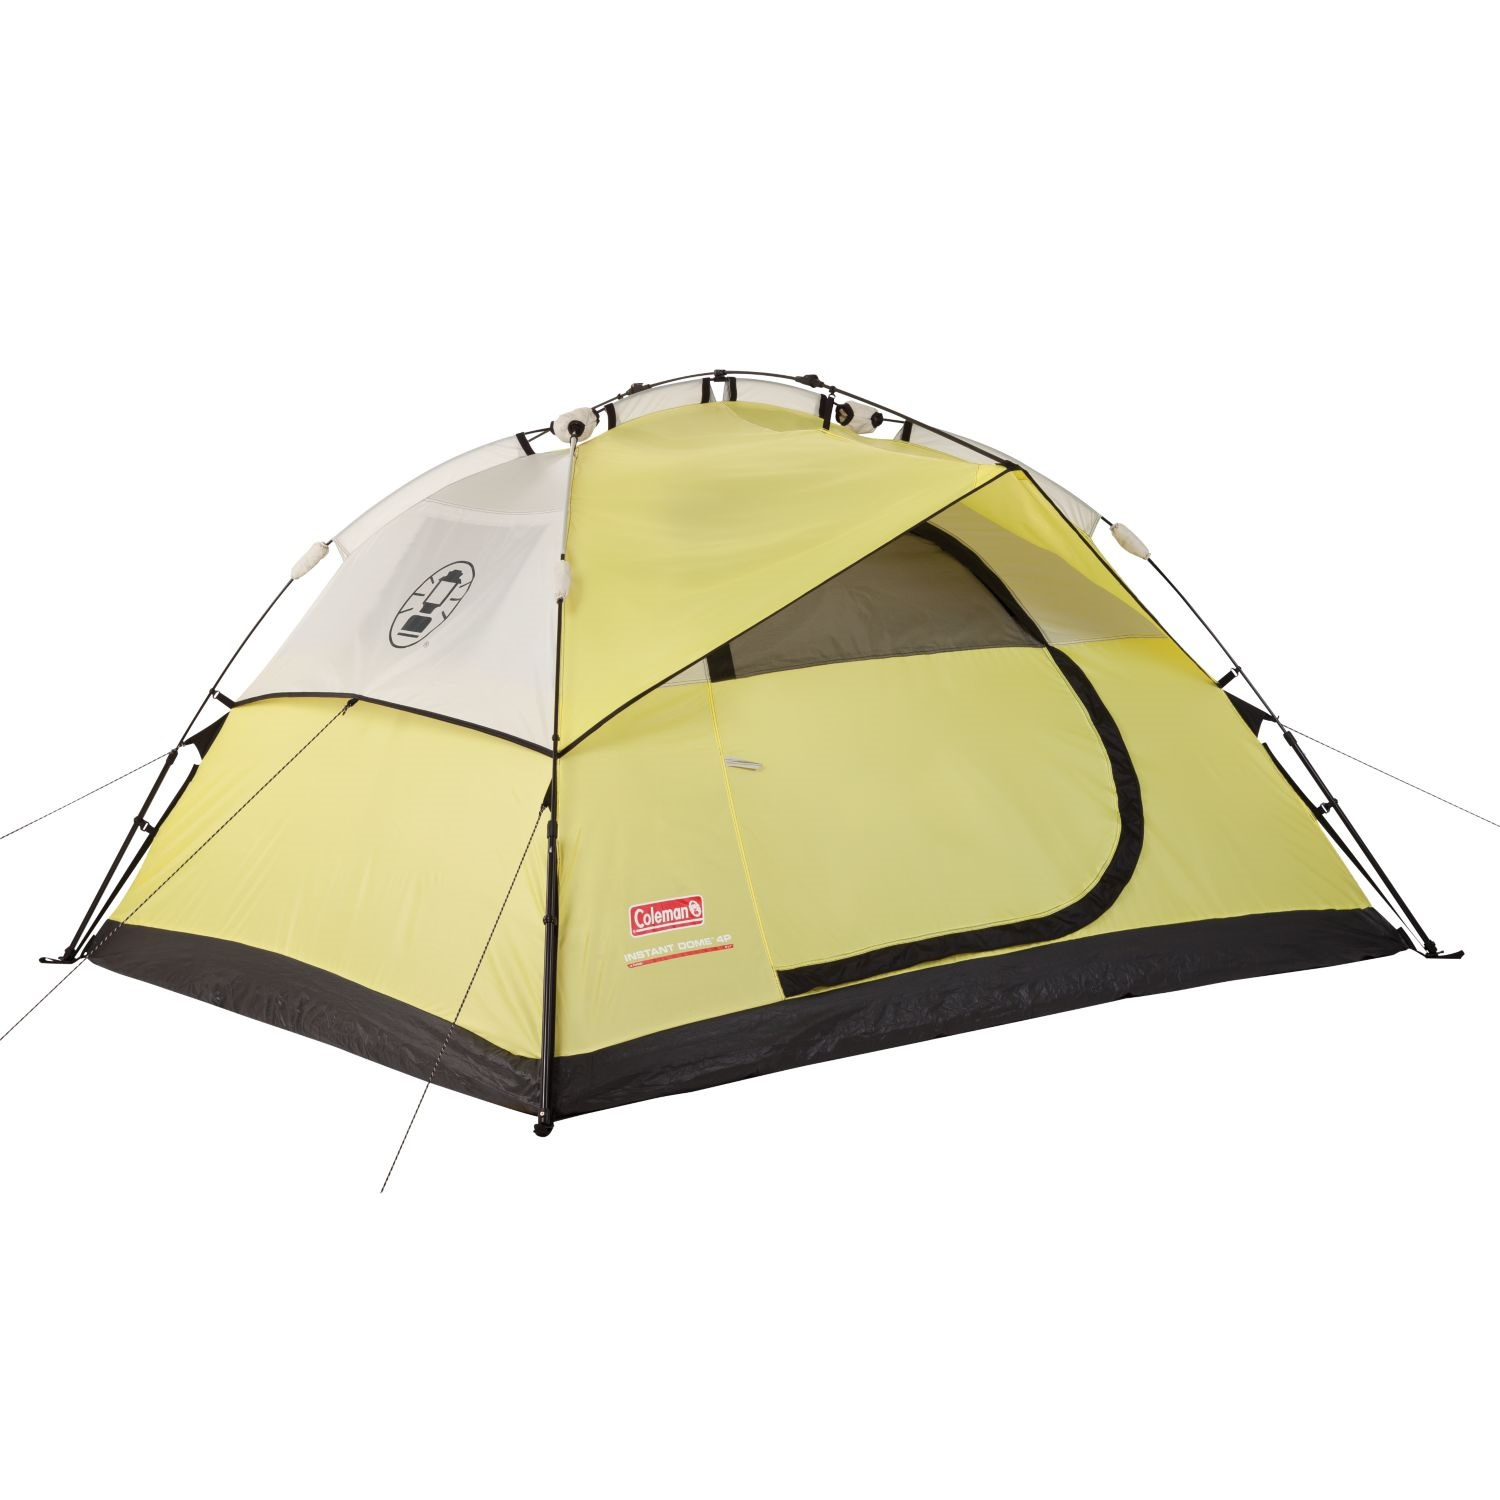 4 Person Instant Tent : Coleman instant dome person double hub tent